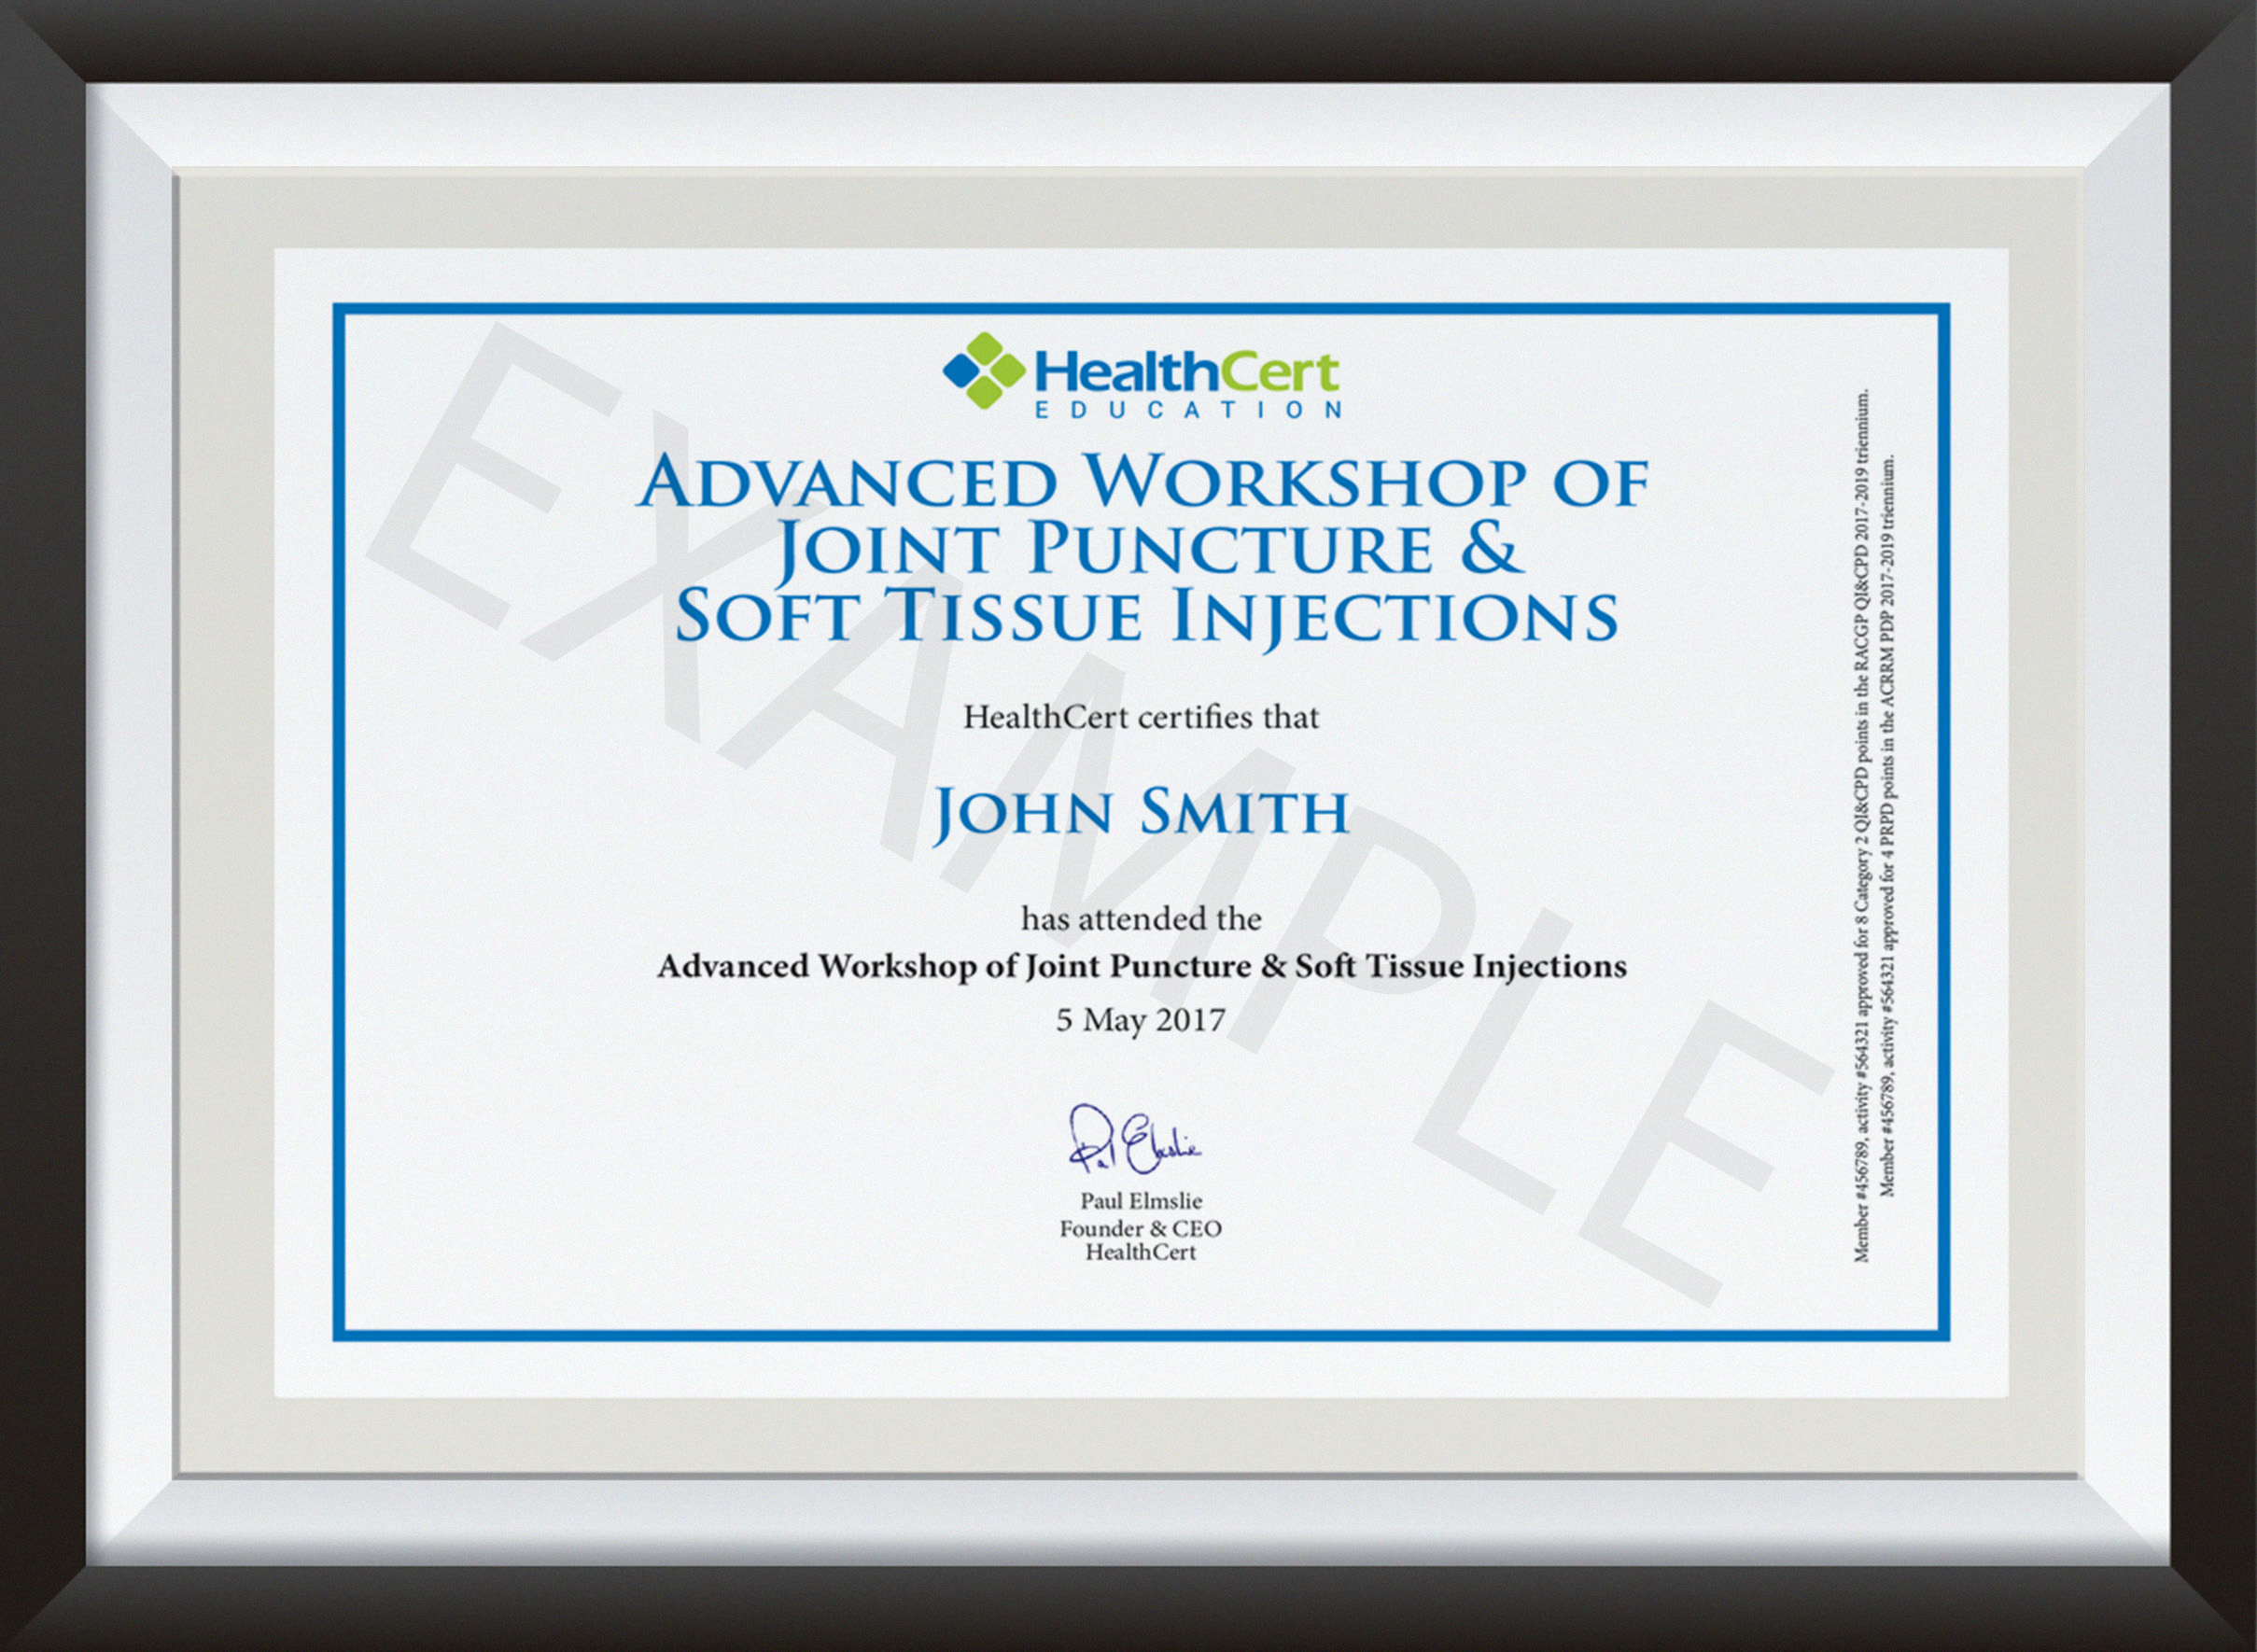 Advanced Workshop in Joint Puncture and Soft Tissue Injections